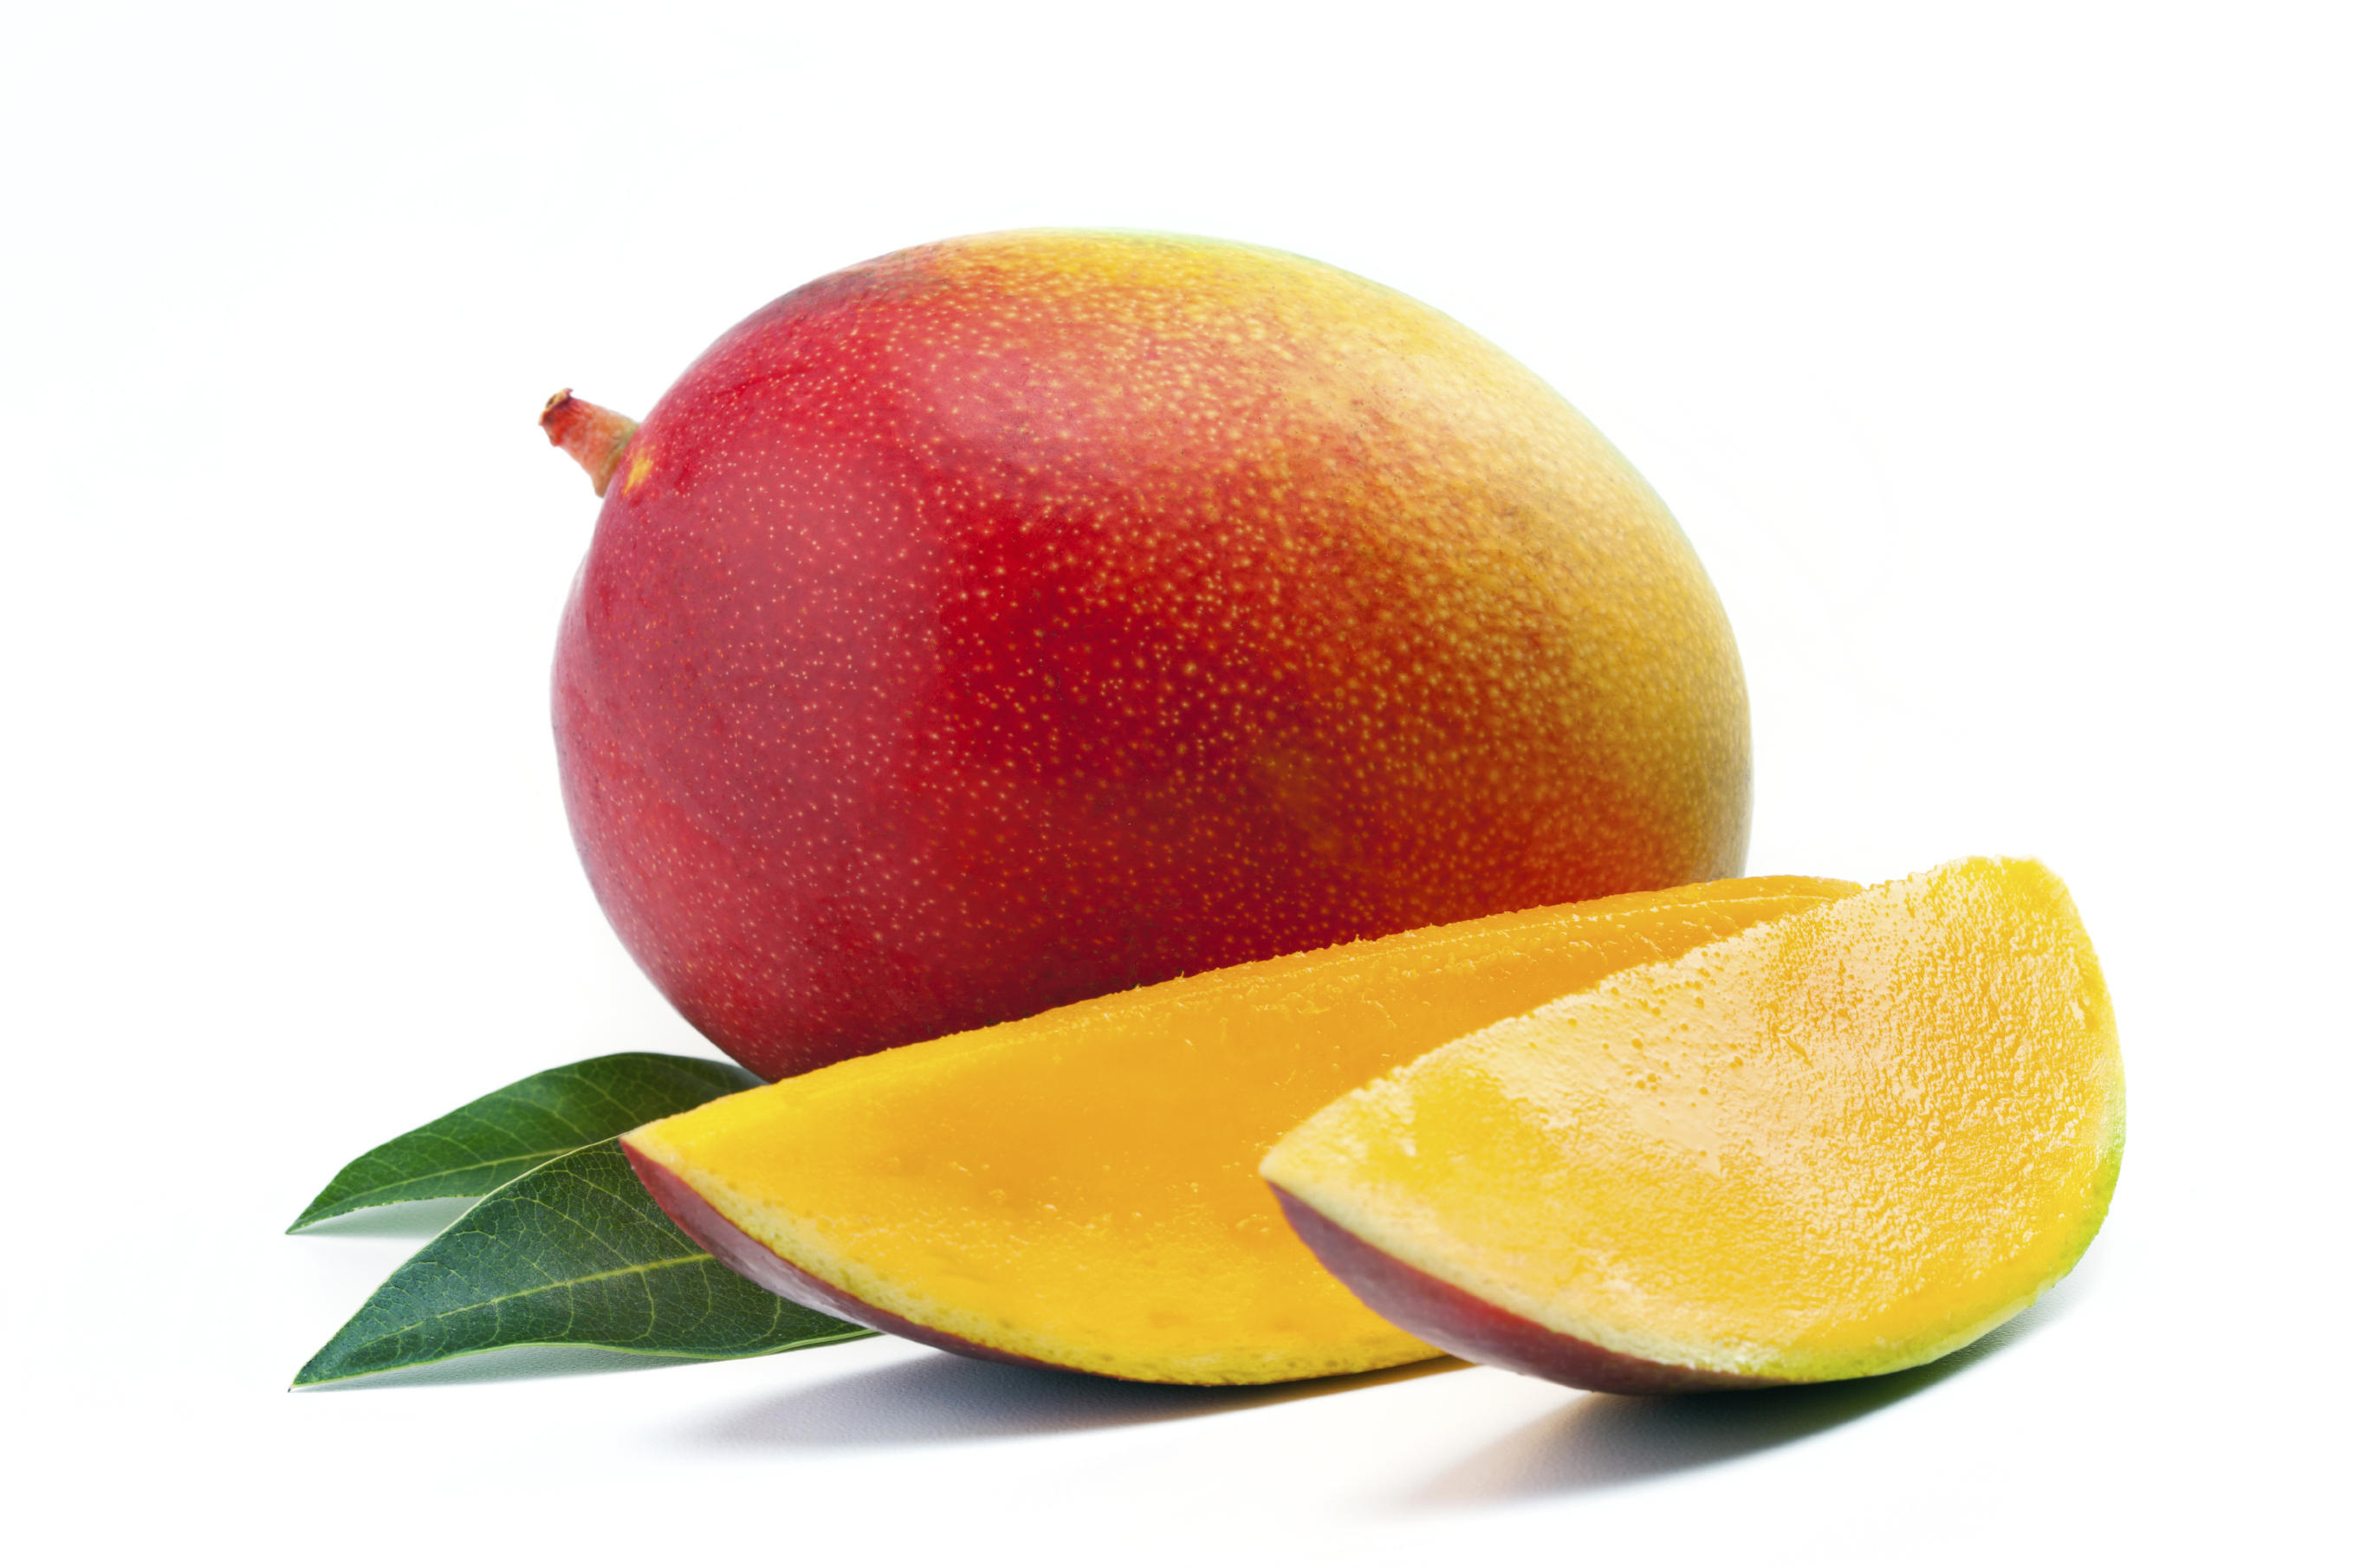 Mango is the national fruit of Pakistan.